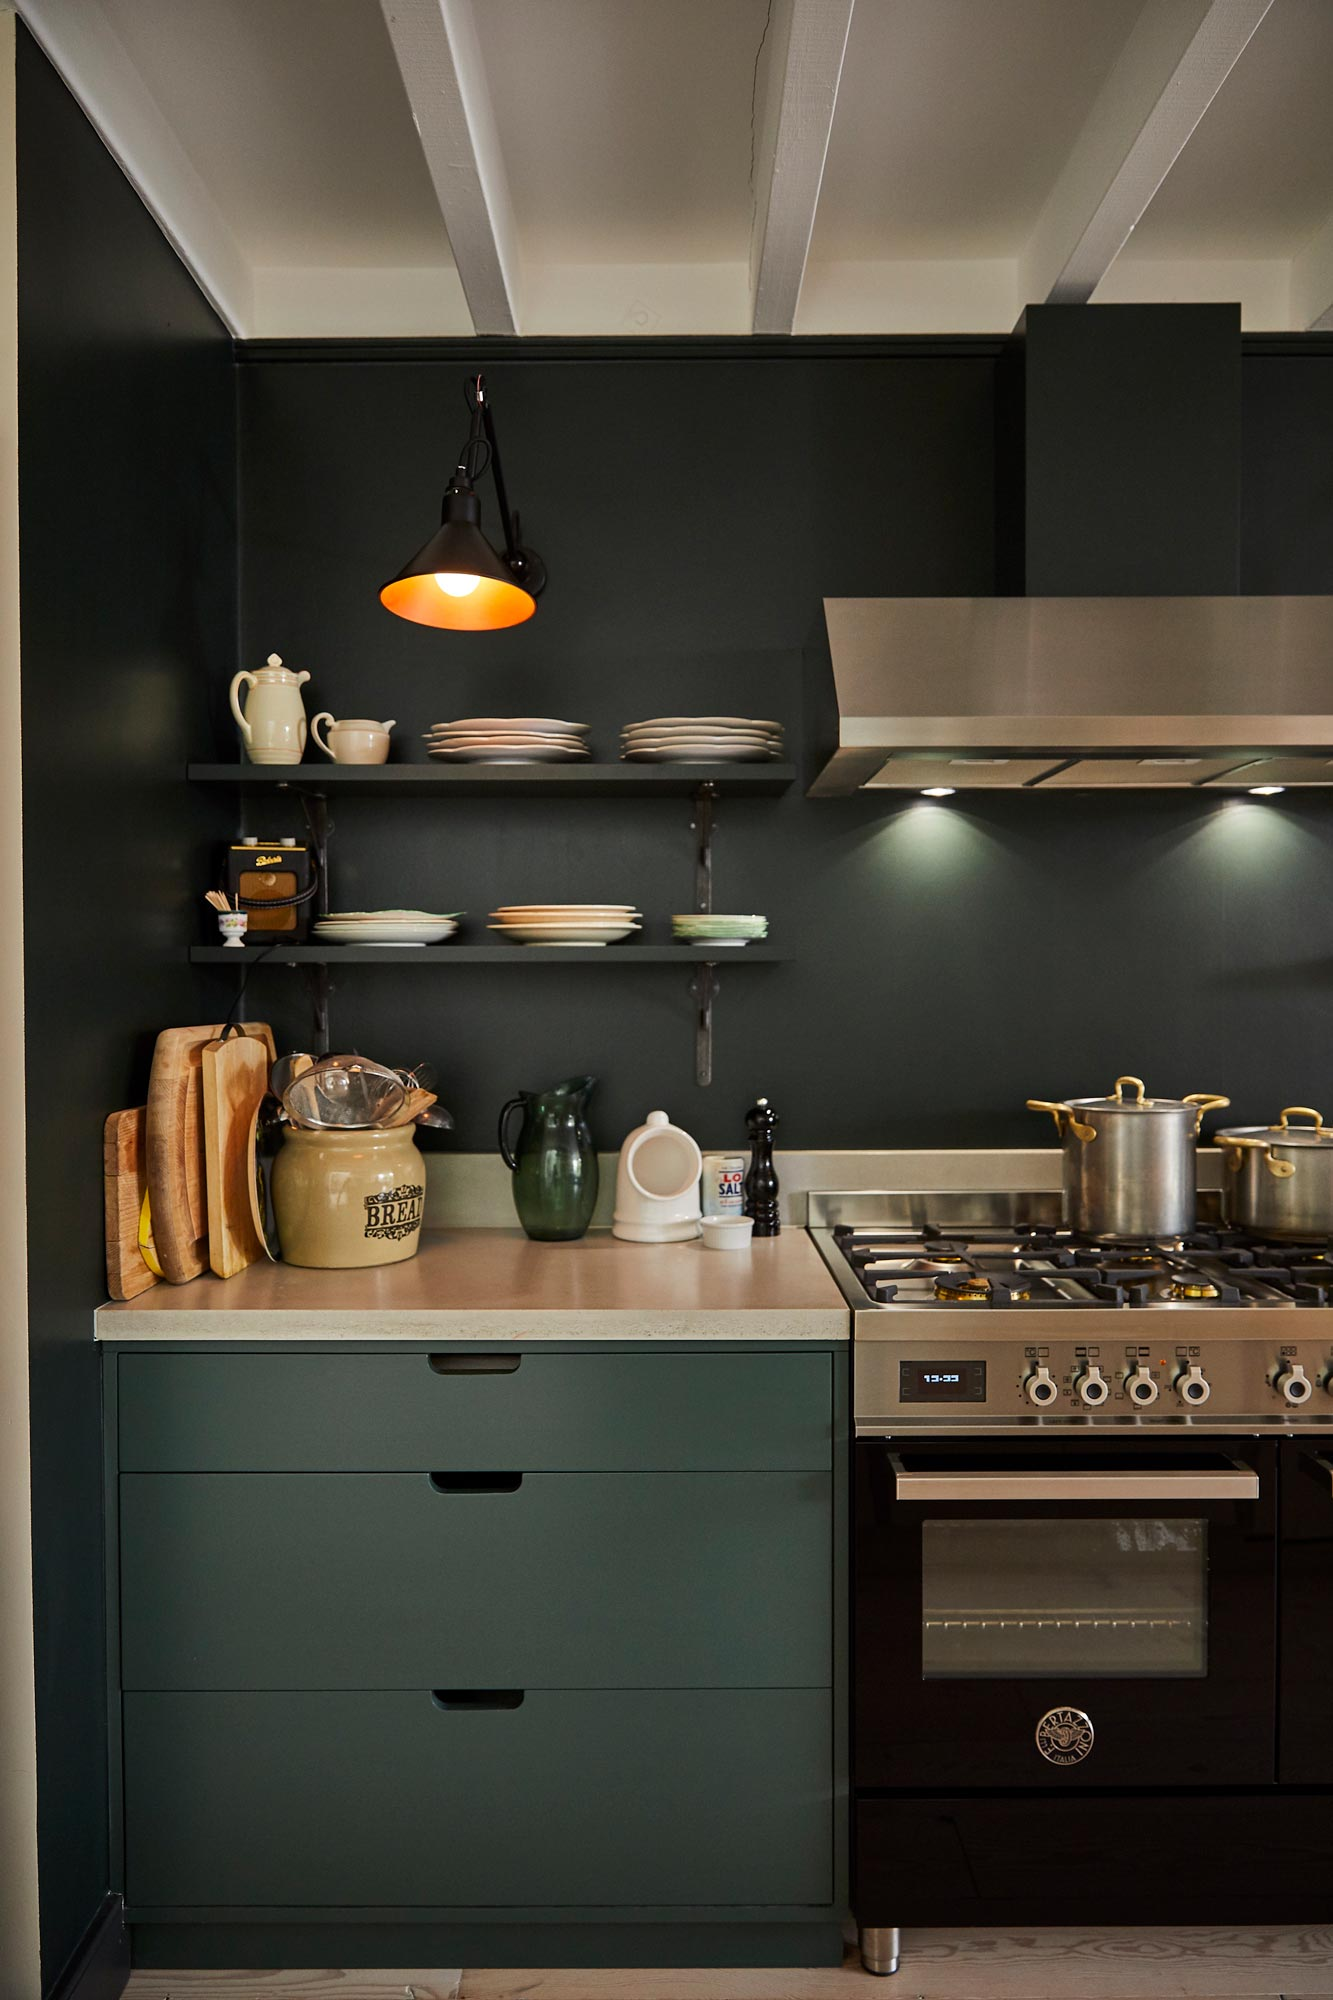 Green painted wall matches green painted pan drawer next to industrial range cooker